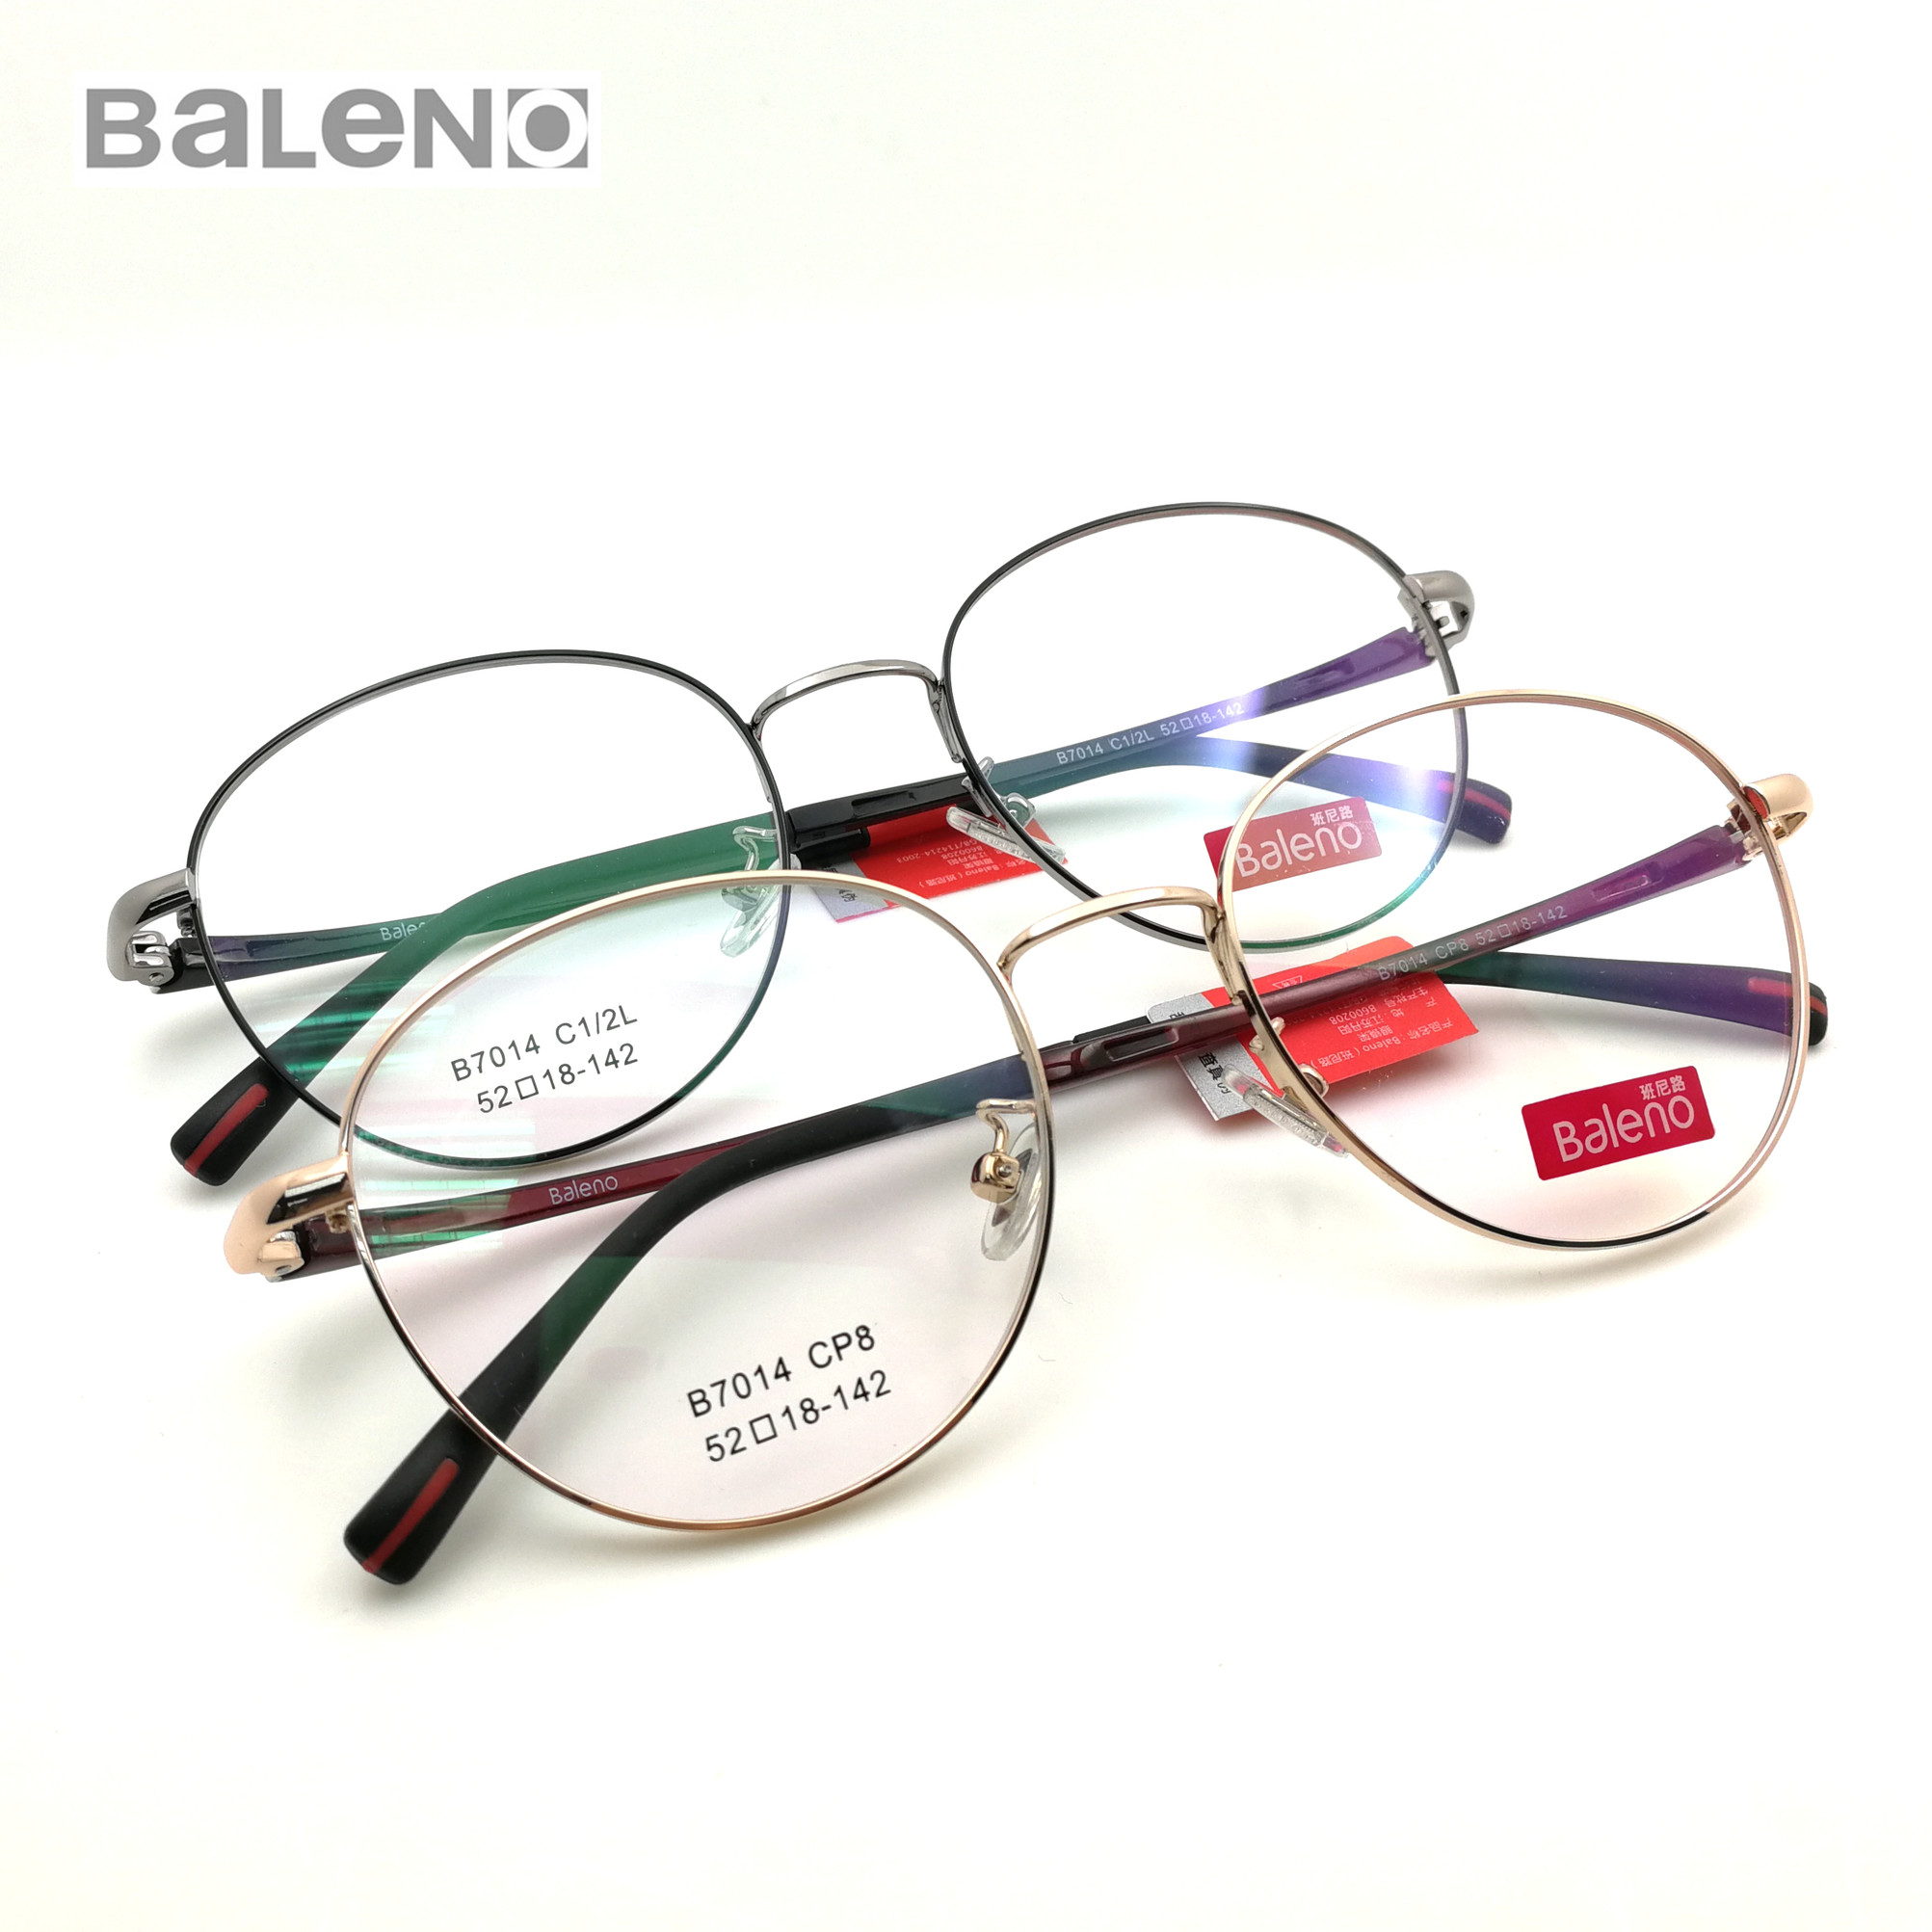 Baleon Benny road b7014 large circle full frame retro spectacle frame high gold wire thin edge student small fresh